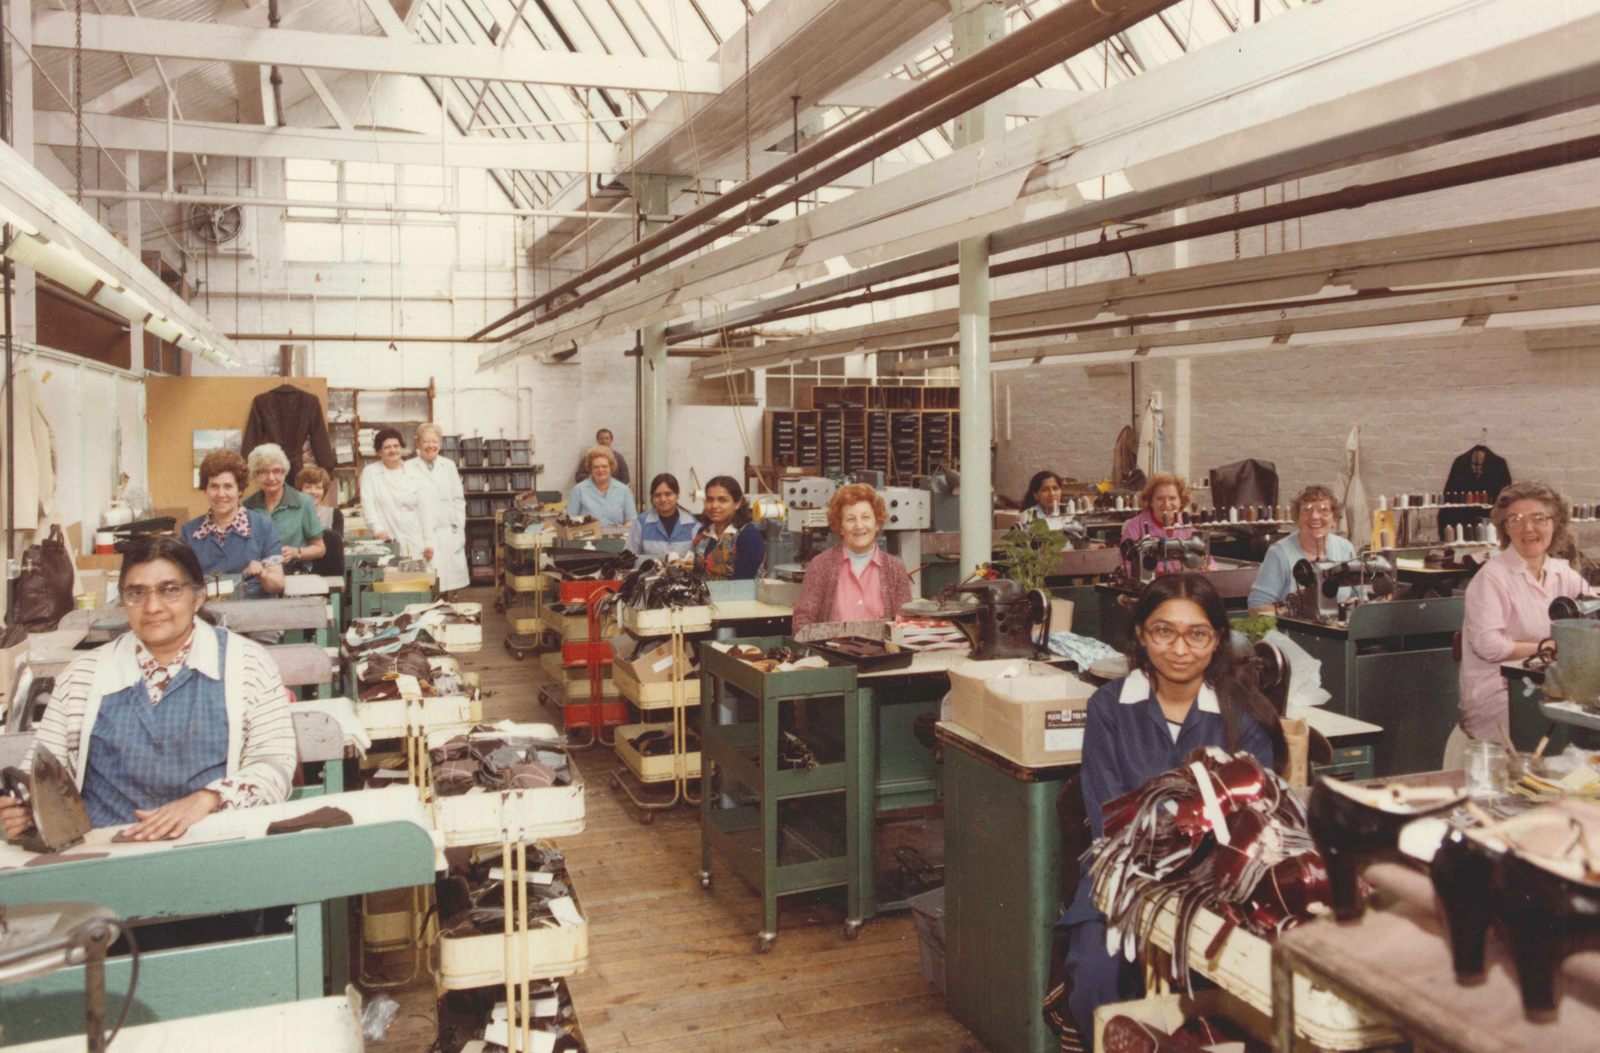 Shoe factory workers in Leicester